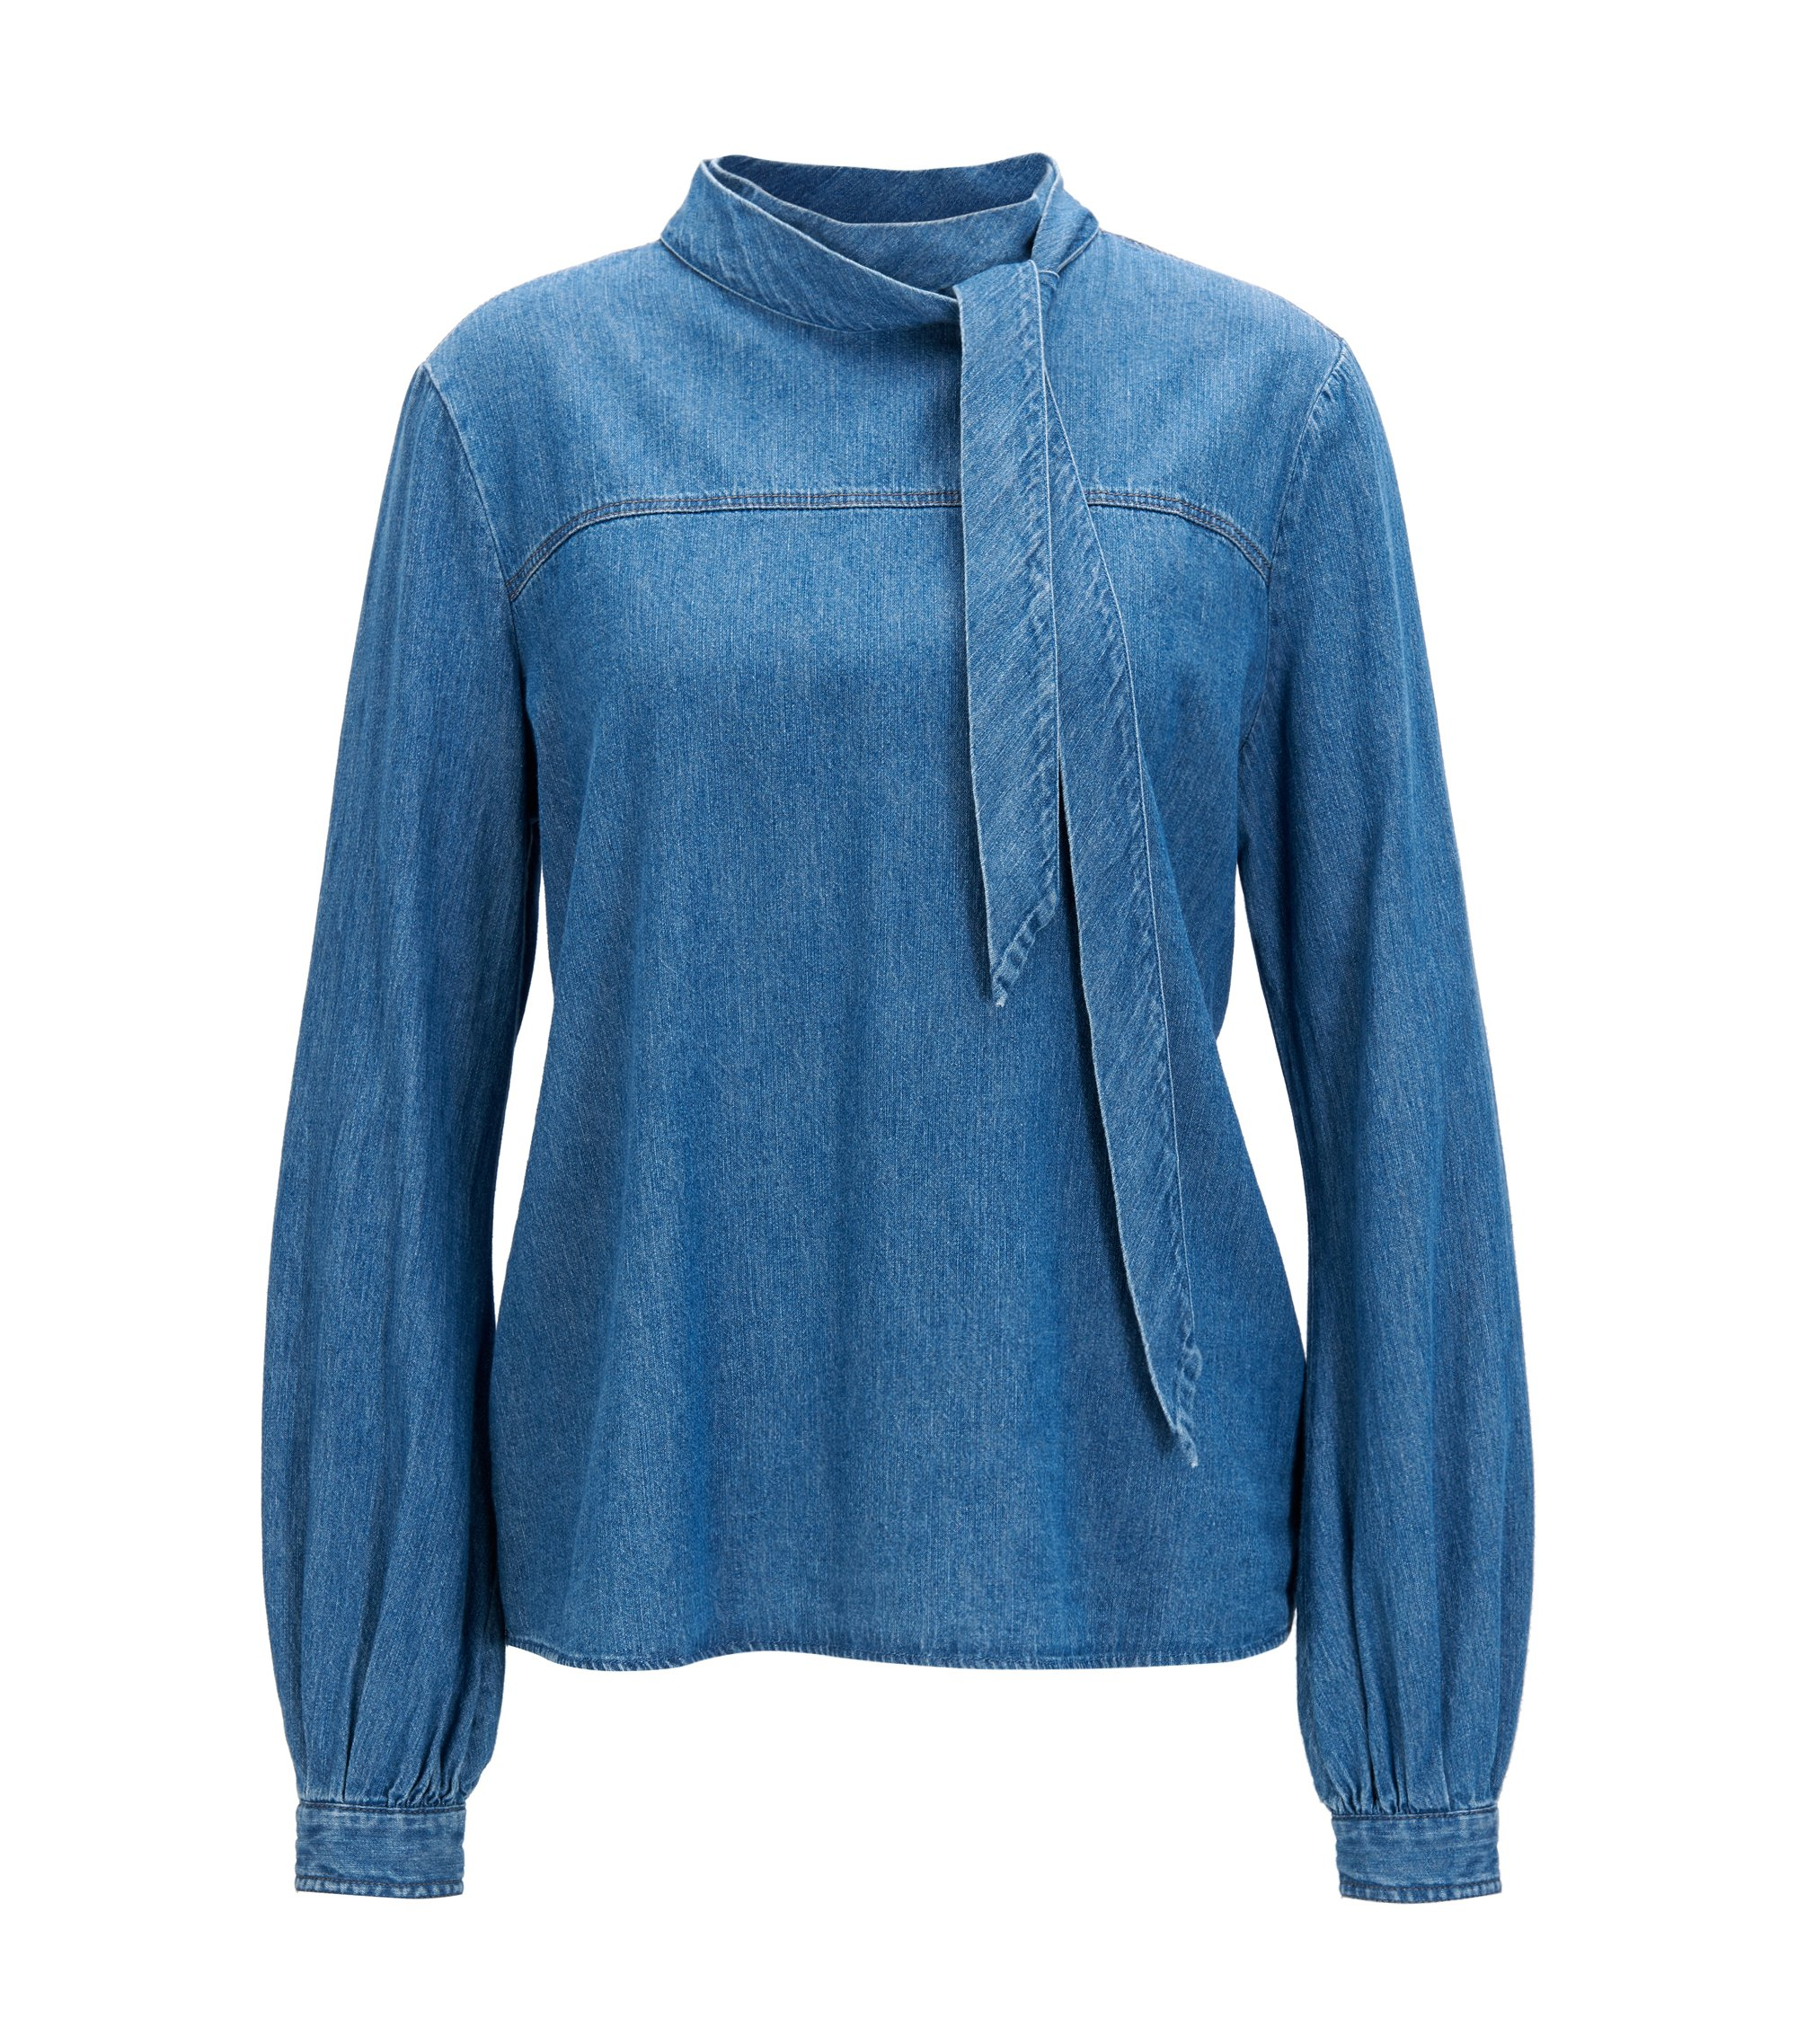 Chemisier Regular Fit en denim indigo, Bleu foncé